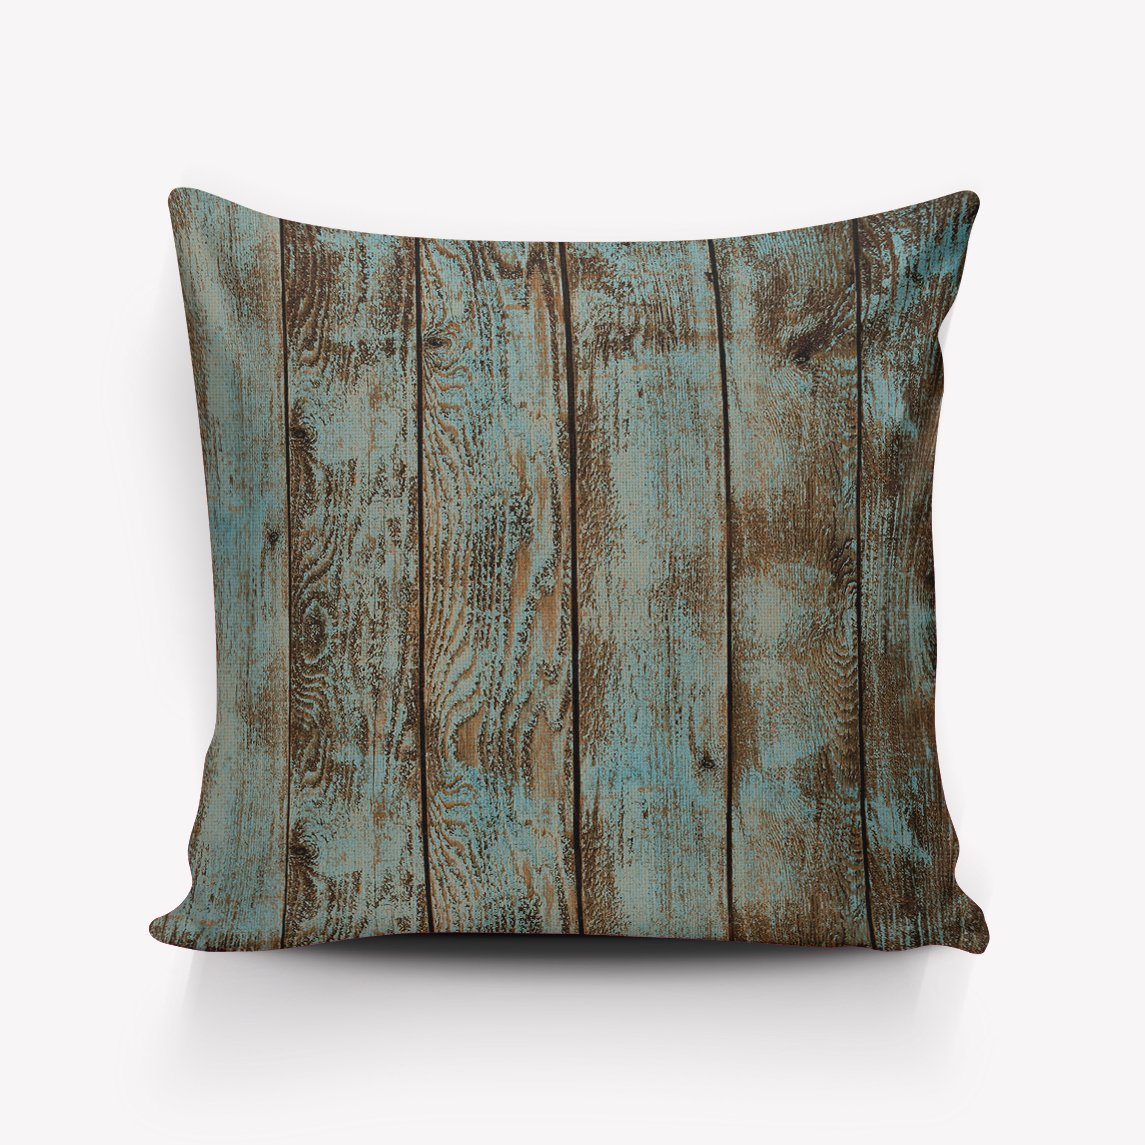 Rustic Wood Board Throw Pillow Indoor Cover Pillow Case For Home Sofa Car Office 20''x20''(Two Sides,Satin)